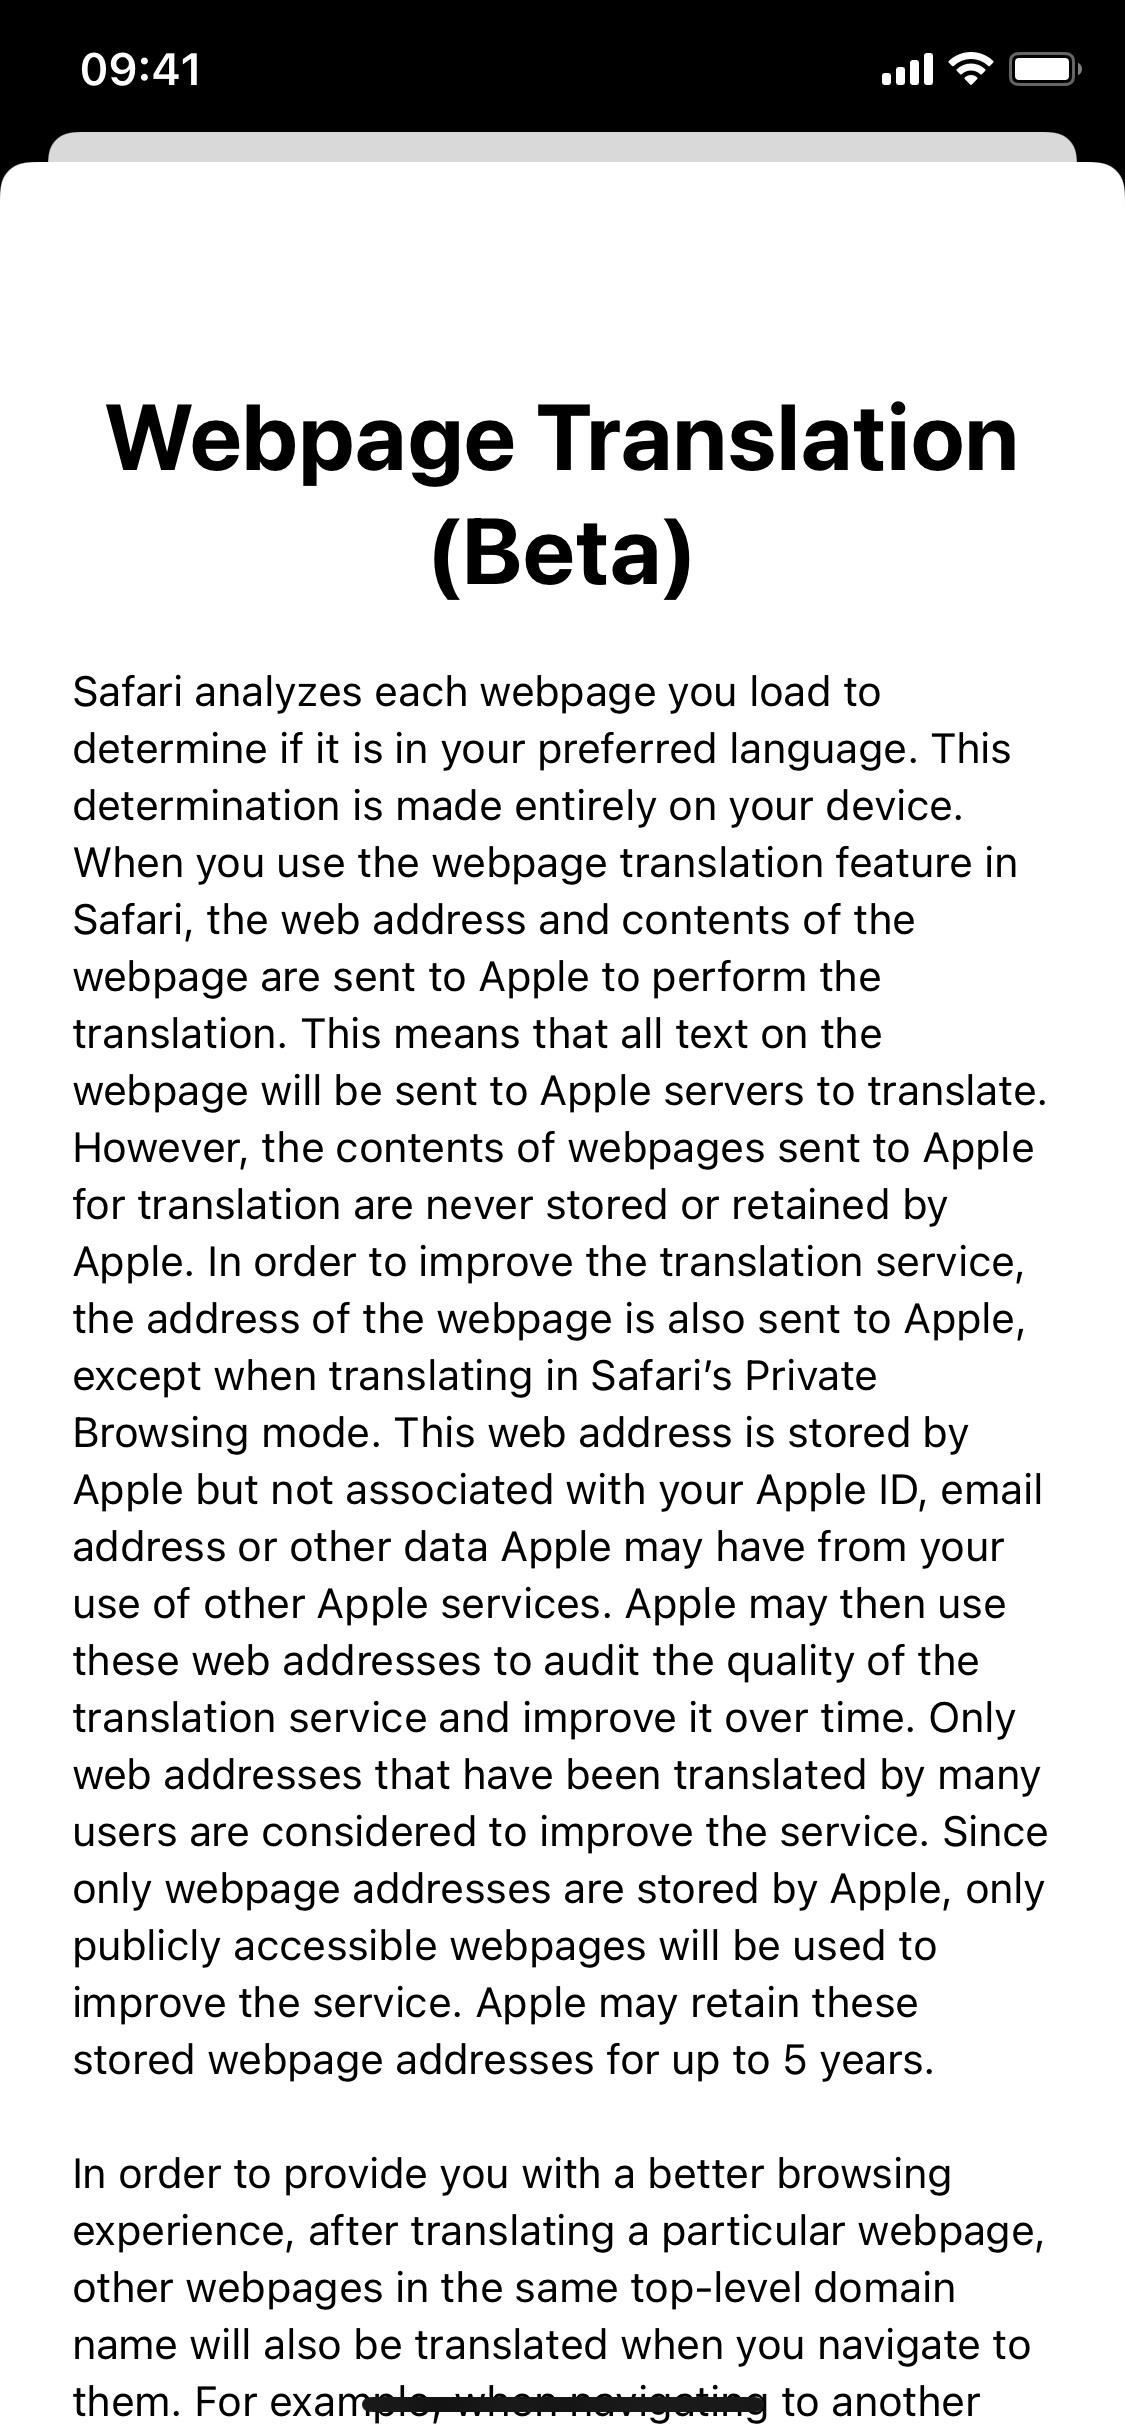 Translate Webpages in Safari to Another Language Using Apple's New Translation Tool